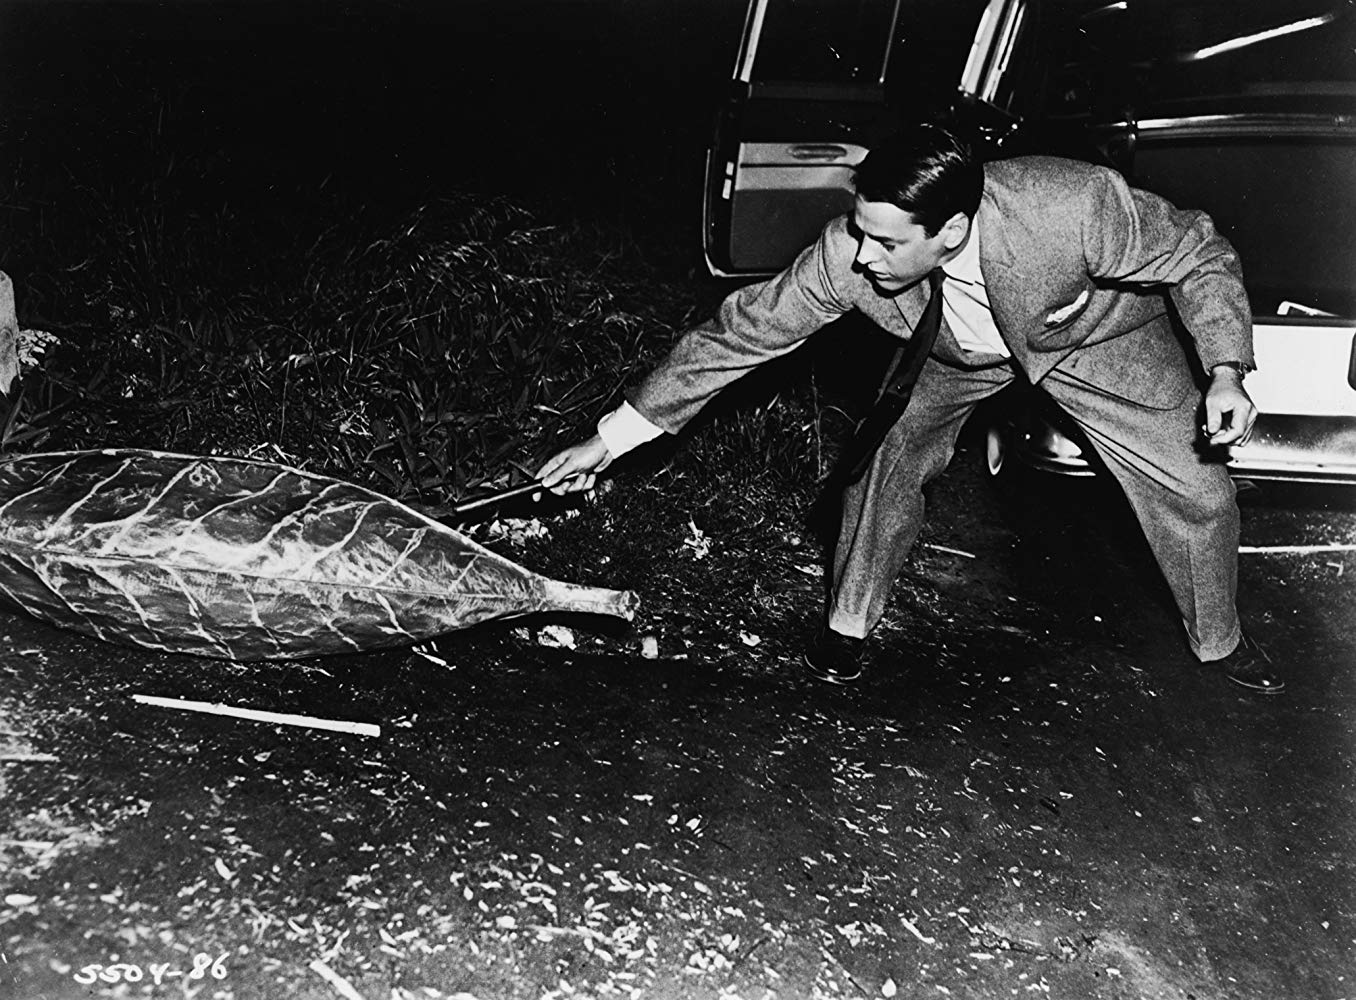 Kevin McCarthy examines a pod in Invasion of the Body Snatchers (1956)